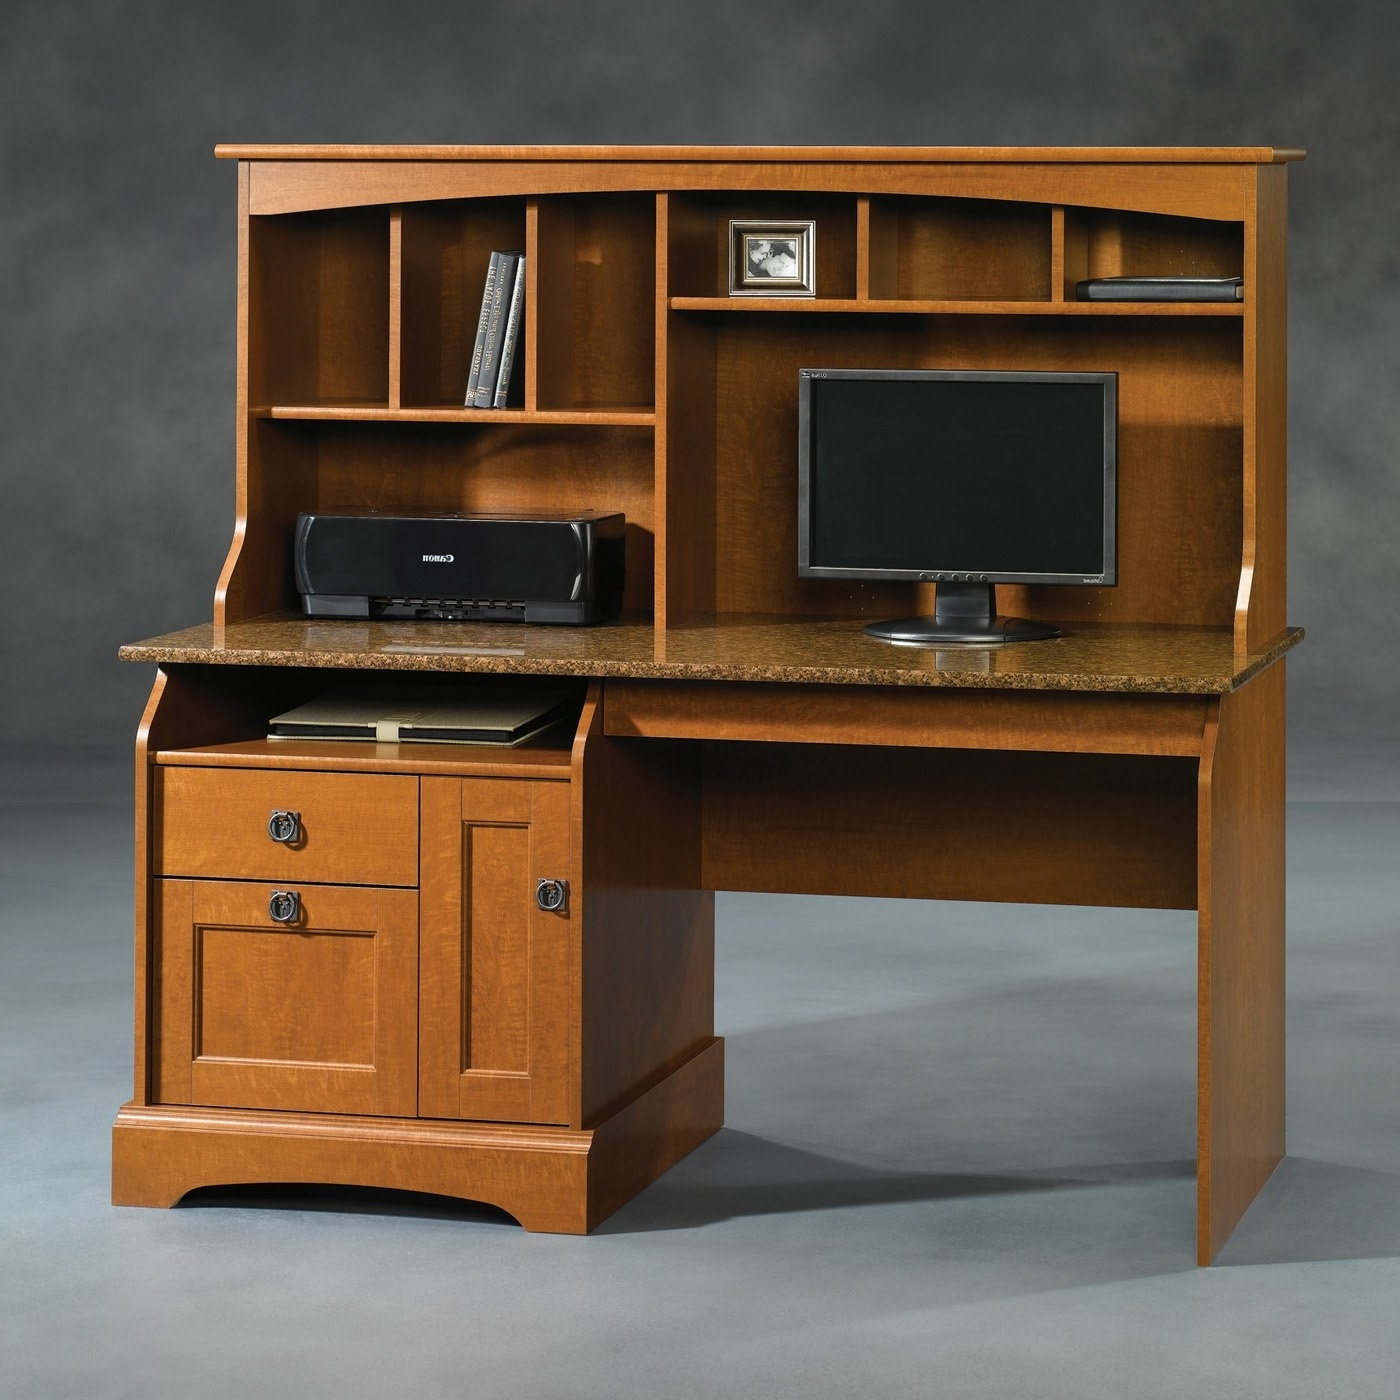 Computer Desks With Doors With Regard To Famous Brown Wooden Computer Desk With Hutch And Granite Top Completed (View 13 of 20)